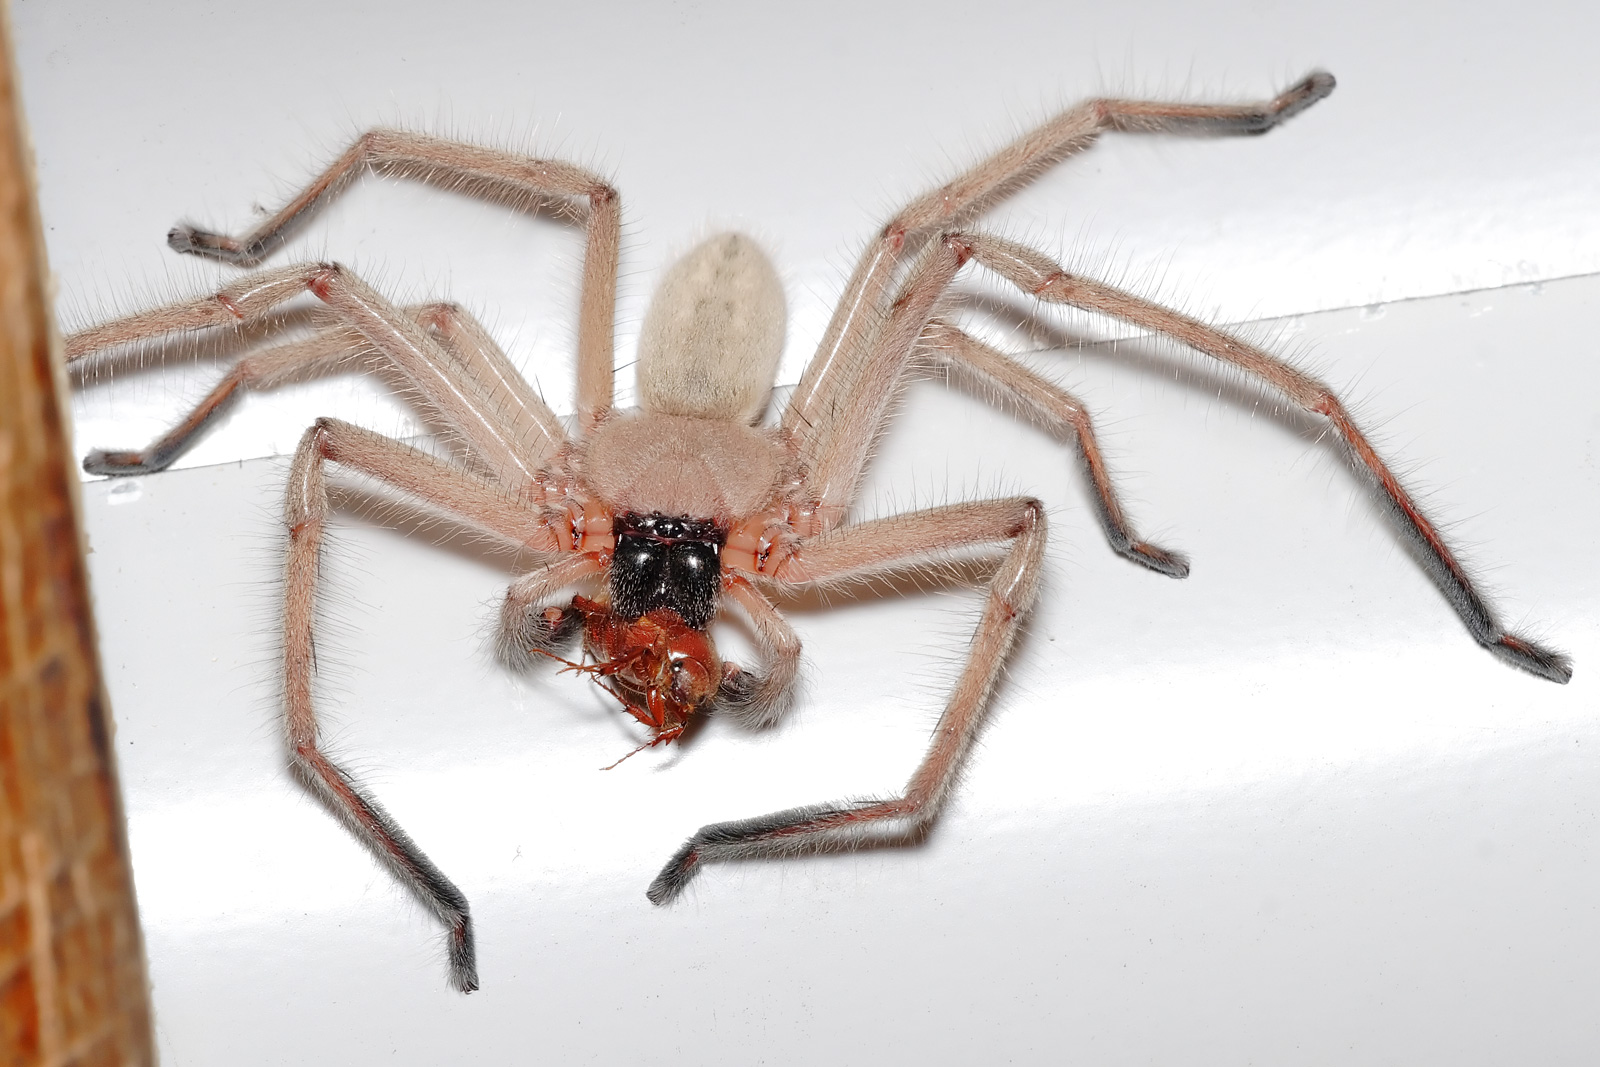 Huntsman_spider_with_meal.jpg